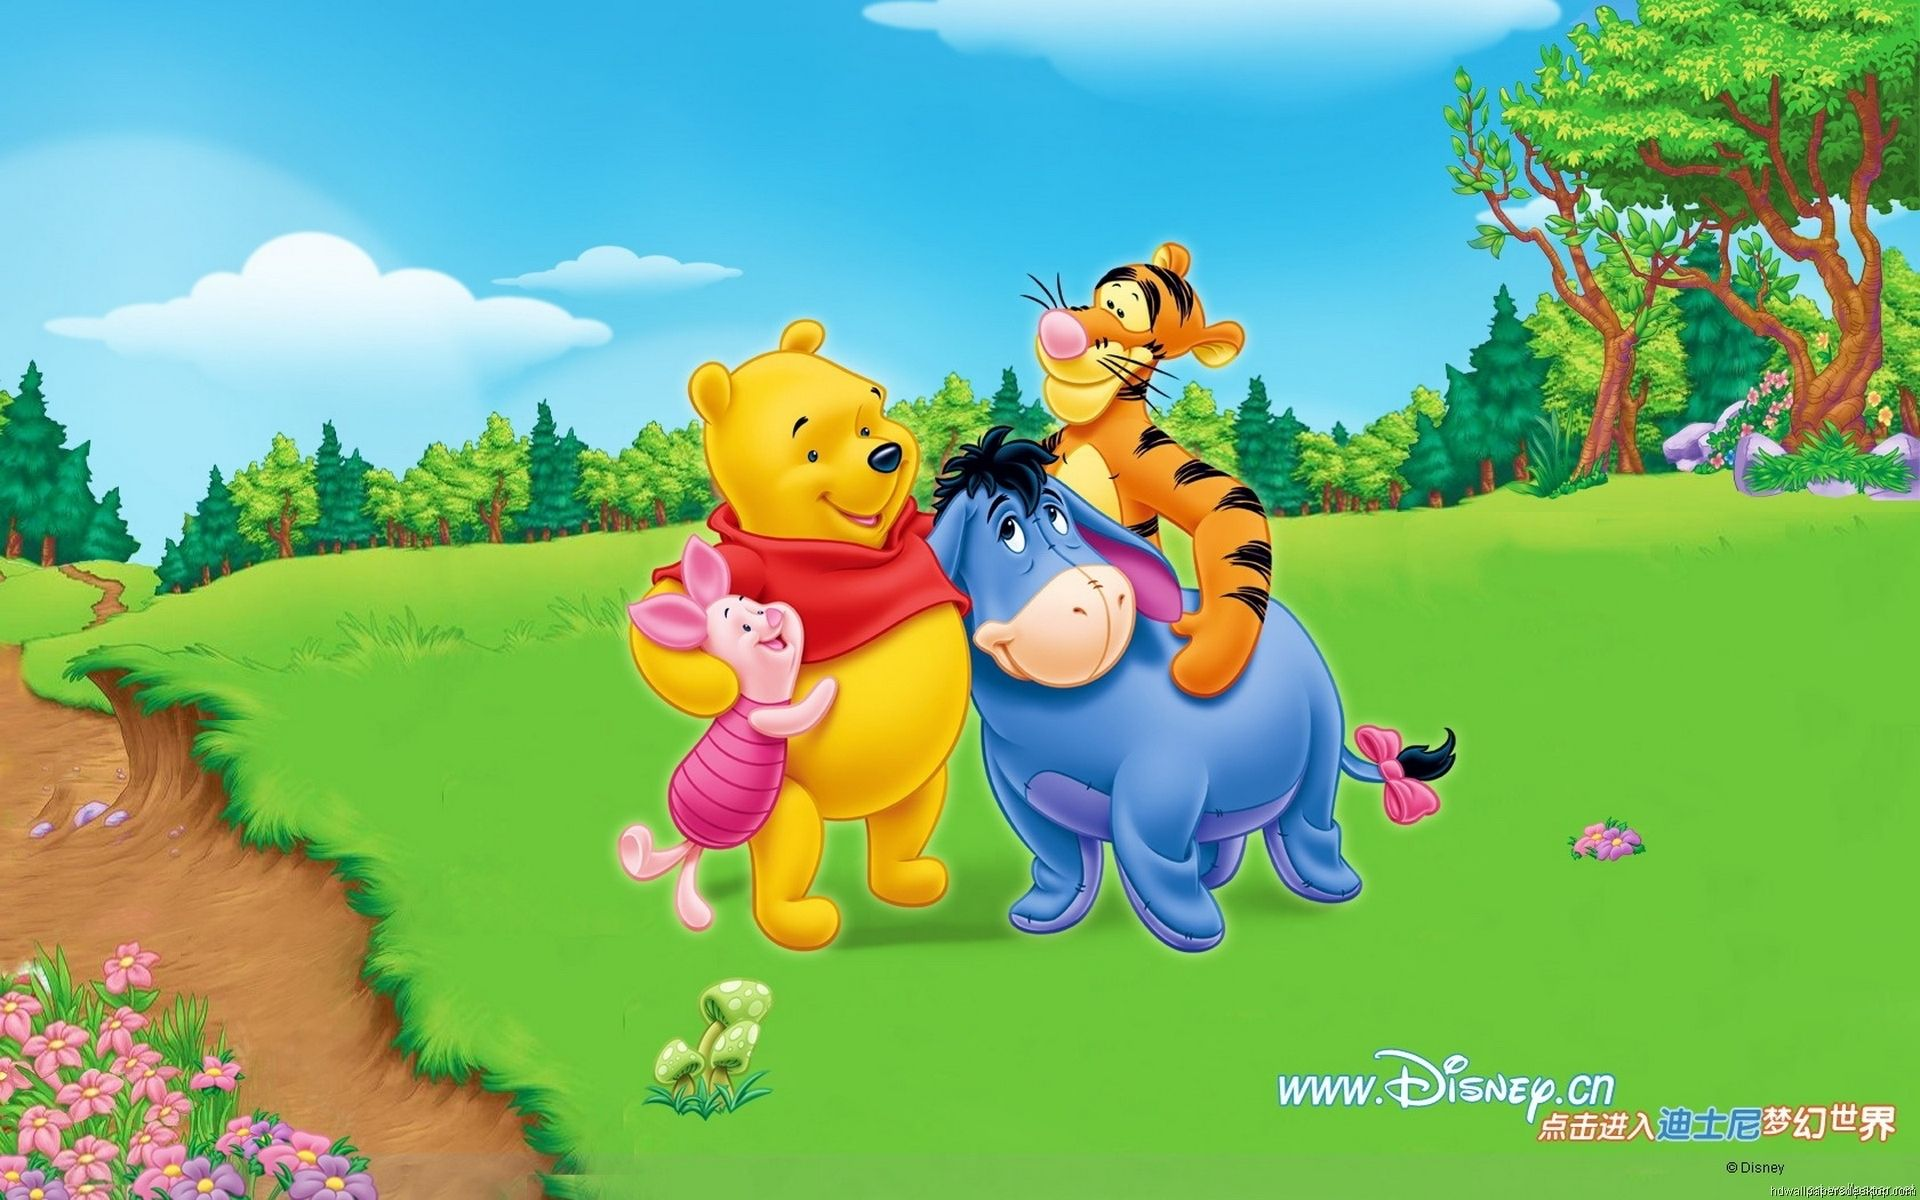 50 Pooh Mobile Wallpaper On Wallpapersafari With The Most